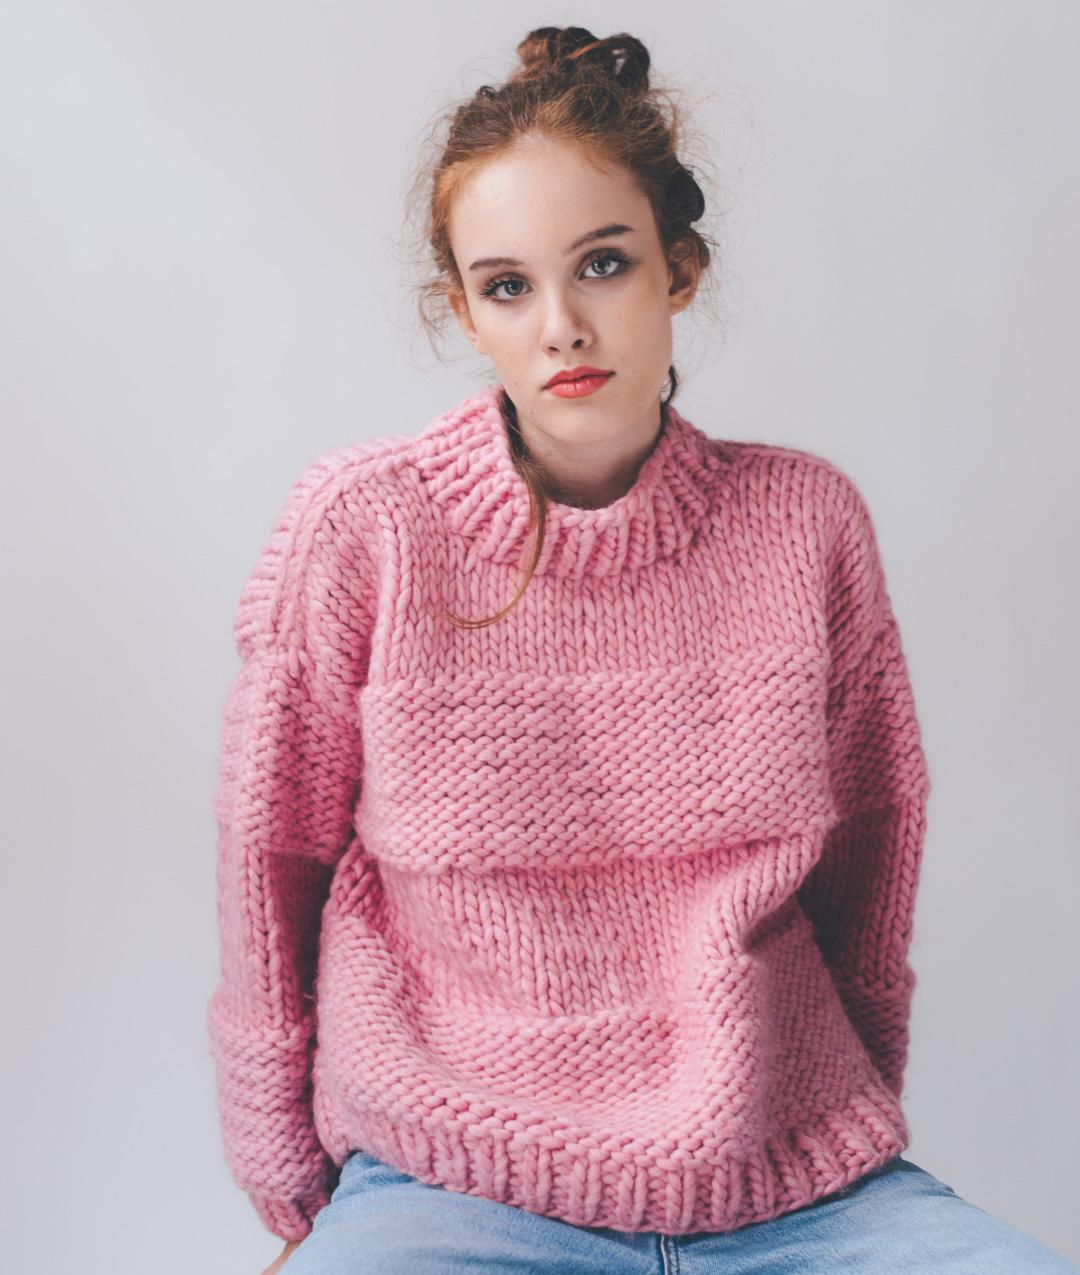 Sweaters and Tops - Wool - Bonnie Sweater - 1